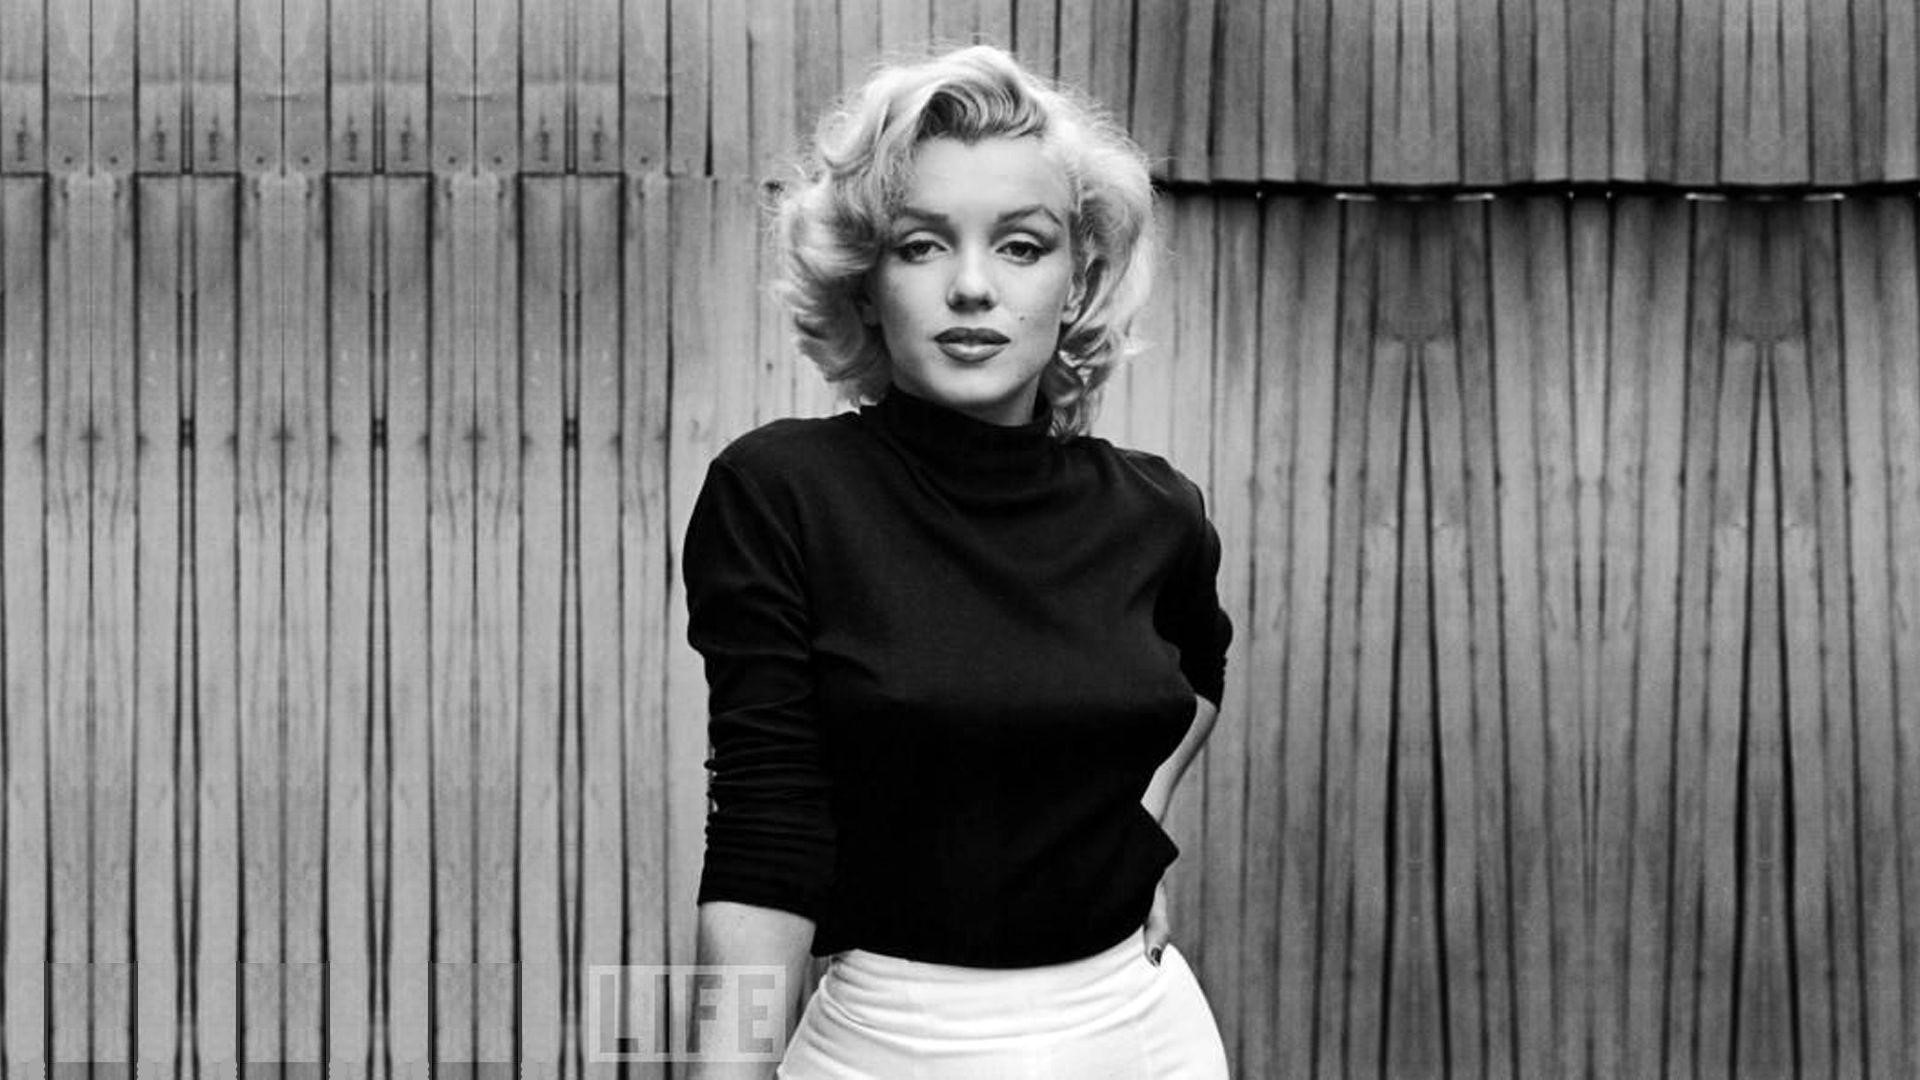 blast from the past - Blast from the Past 5 - Blast from the Past: Hairstyles of the most iconic women in history